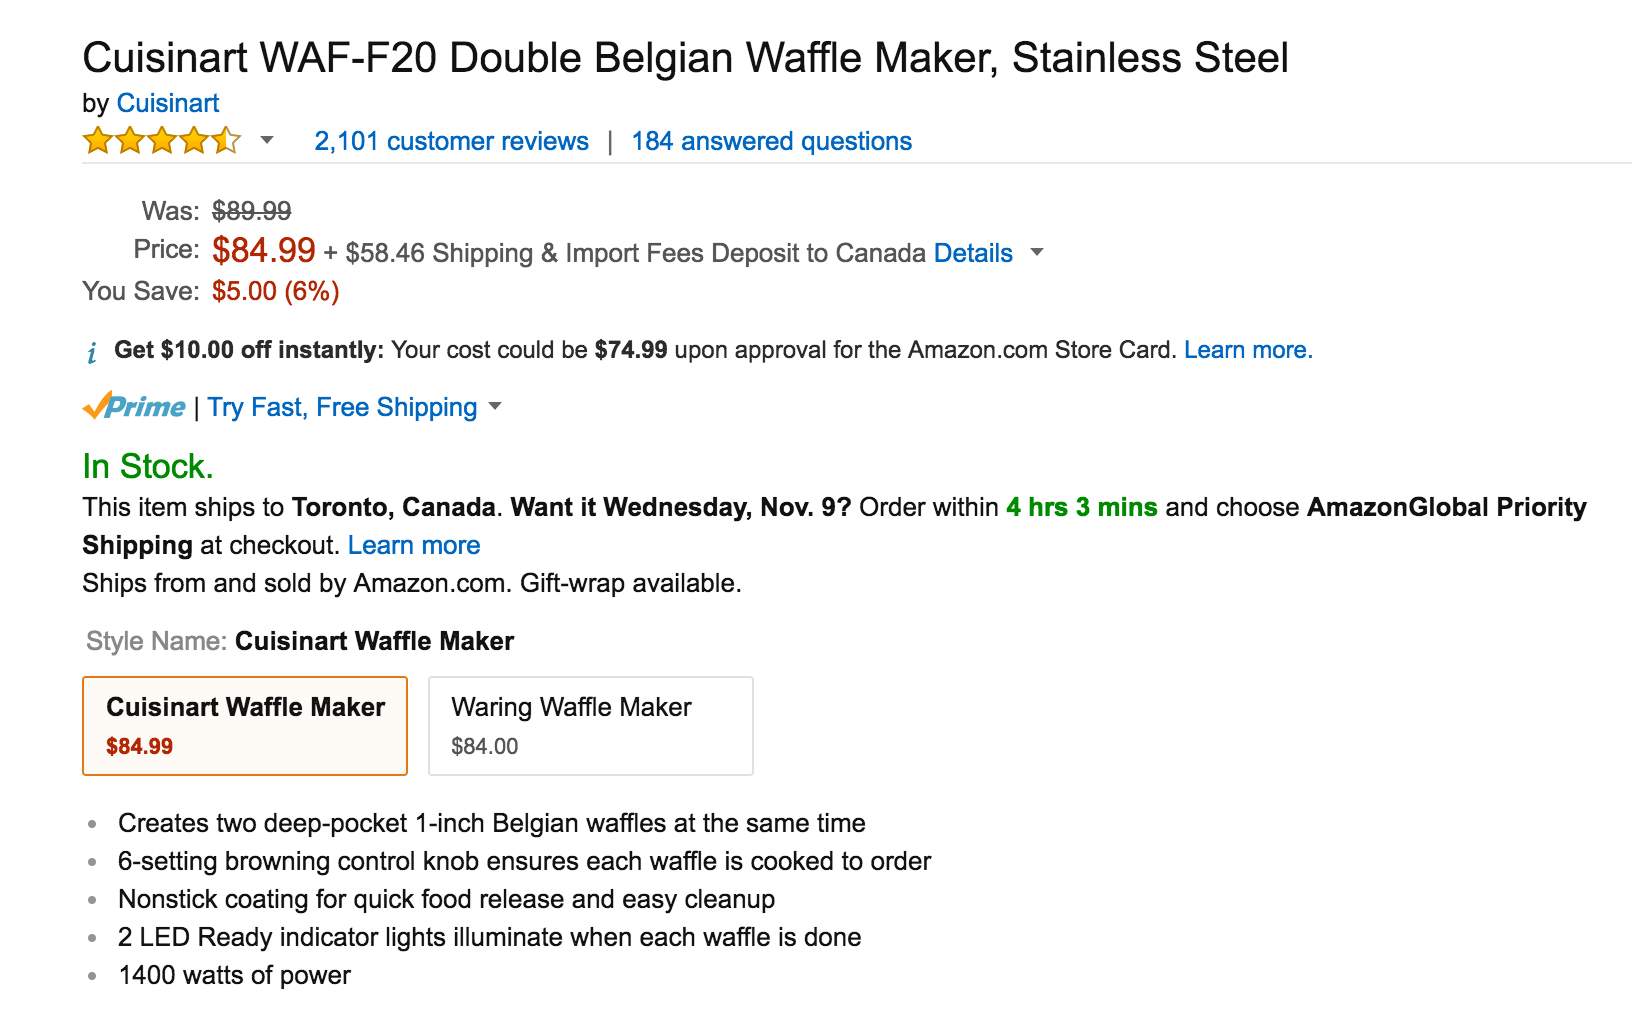 cuisinart-double-belgian-waffle-maker-in-stainless-steel-waf-f20-2